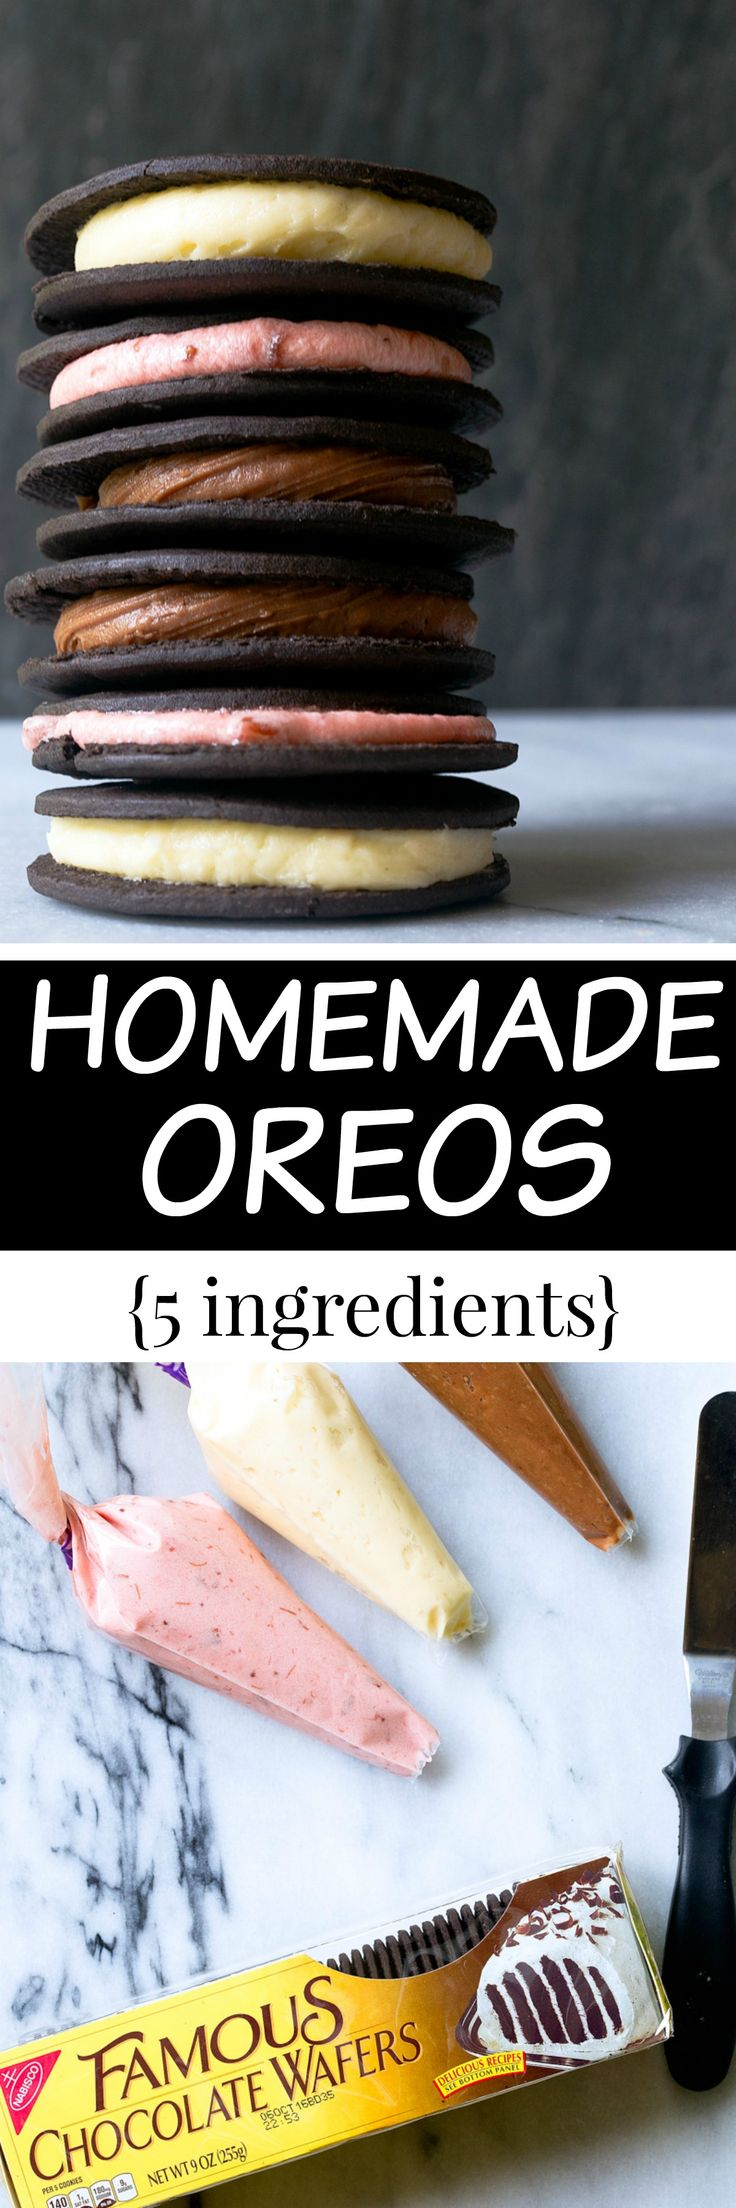 Homemade Oreo Thins with Neapolitan flavor options. Each flavor of homemade Oreos only has 5 ingredients. This recipe is so dangerous to know! @DessertForTwo